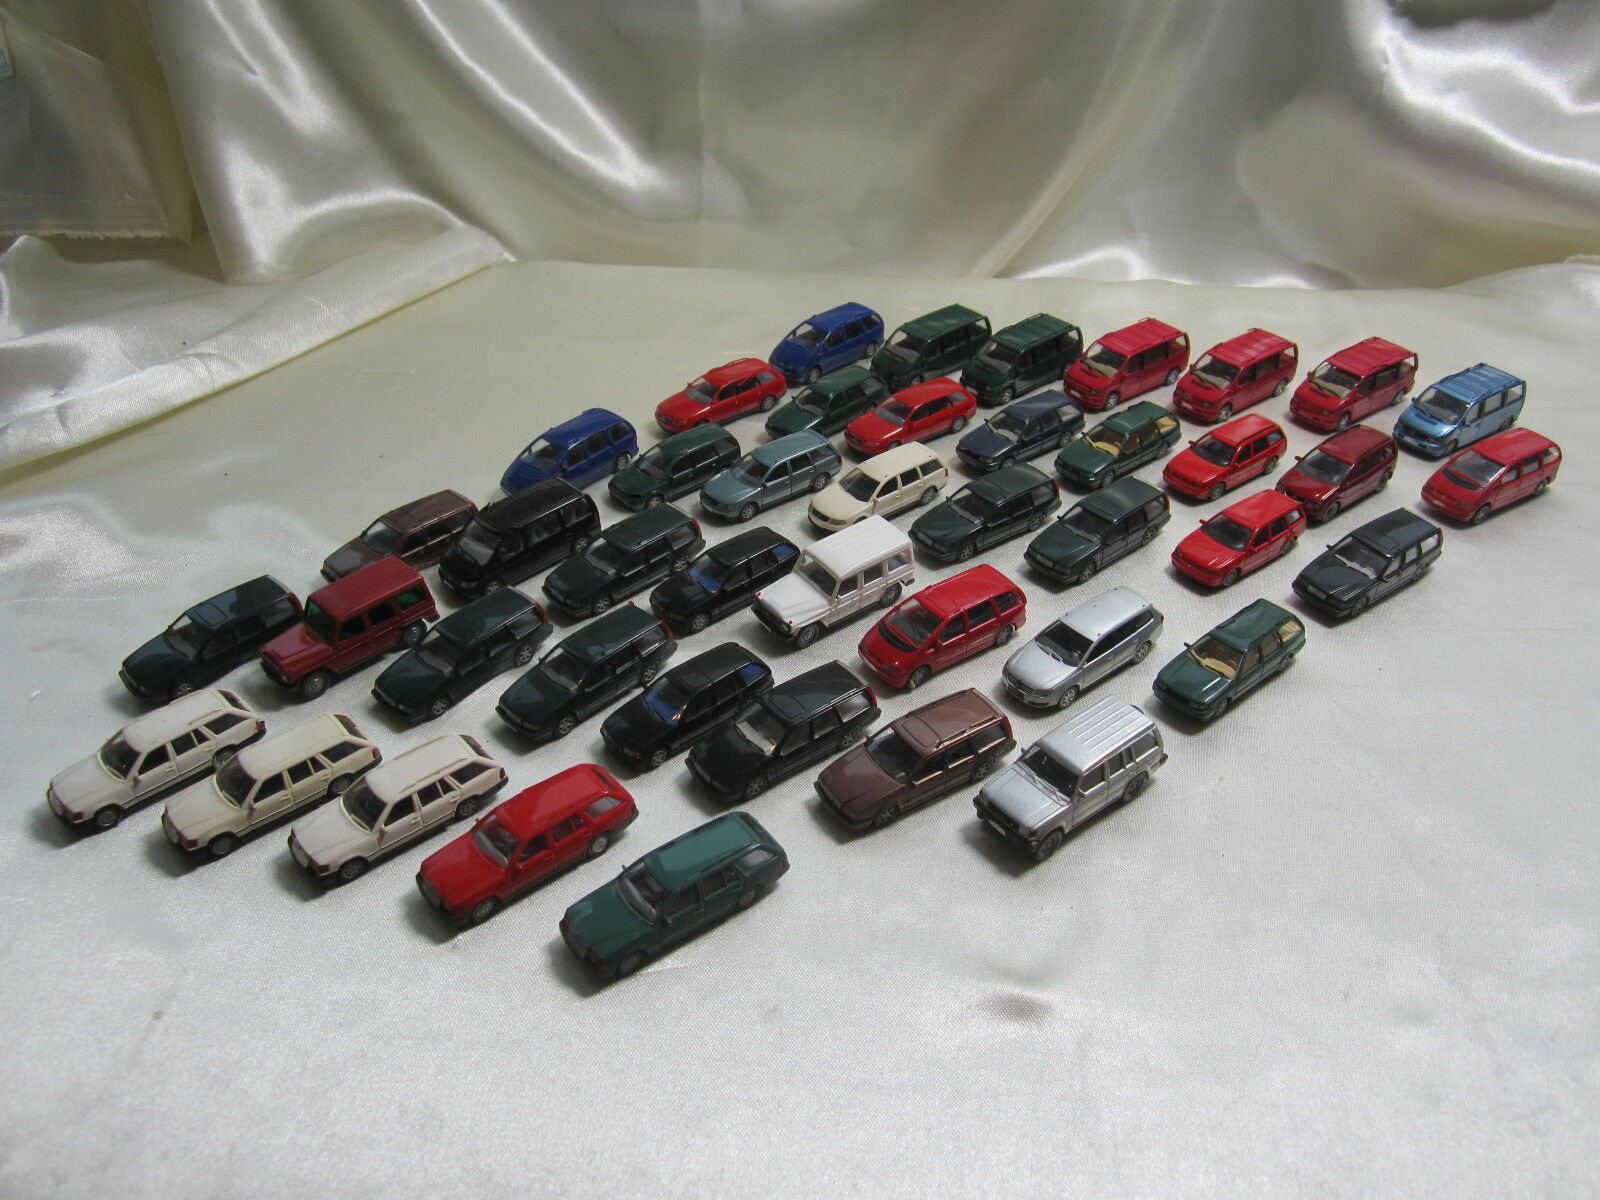 2011-8  lot 45 Wiking modelo coches combis Vans